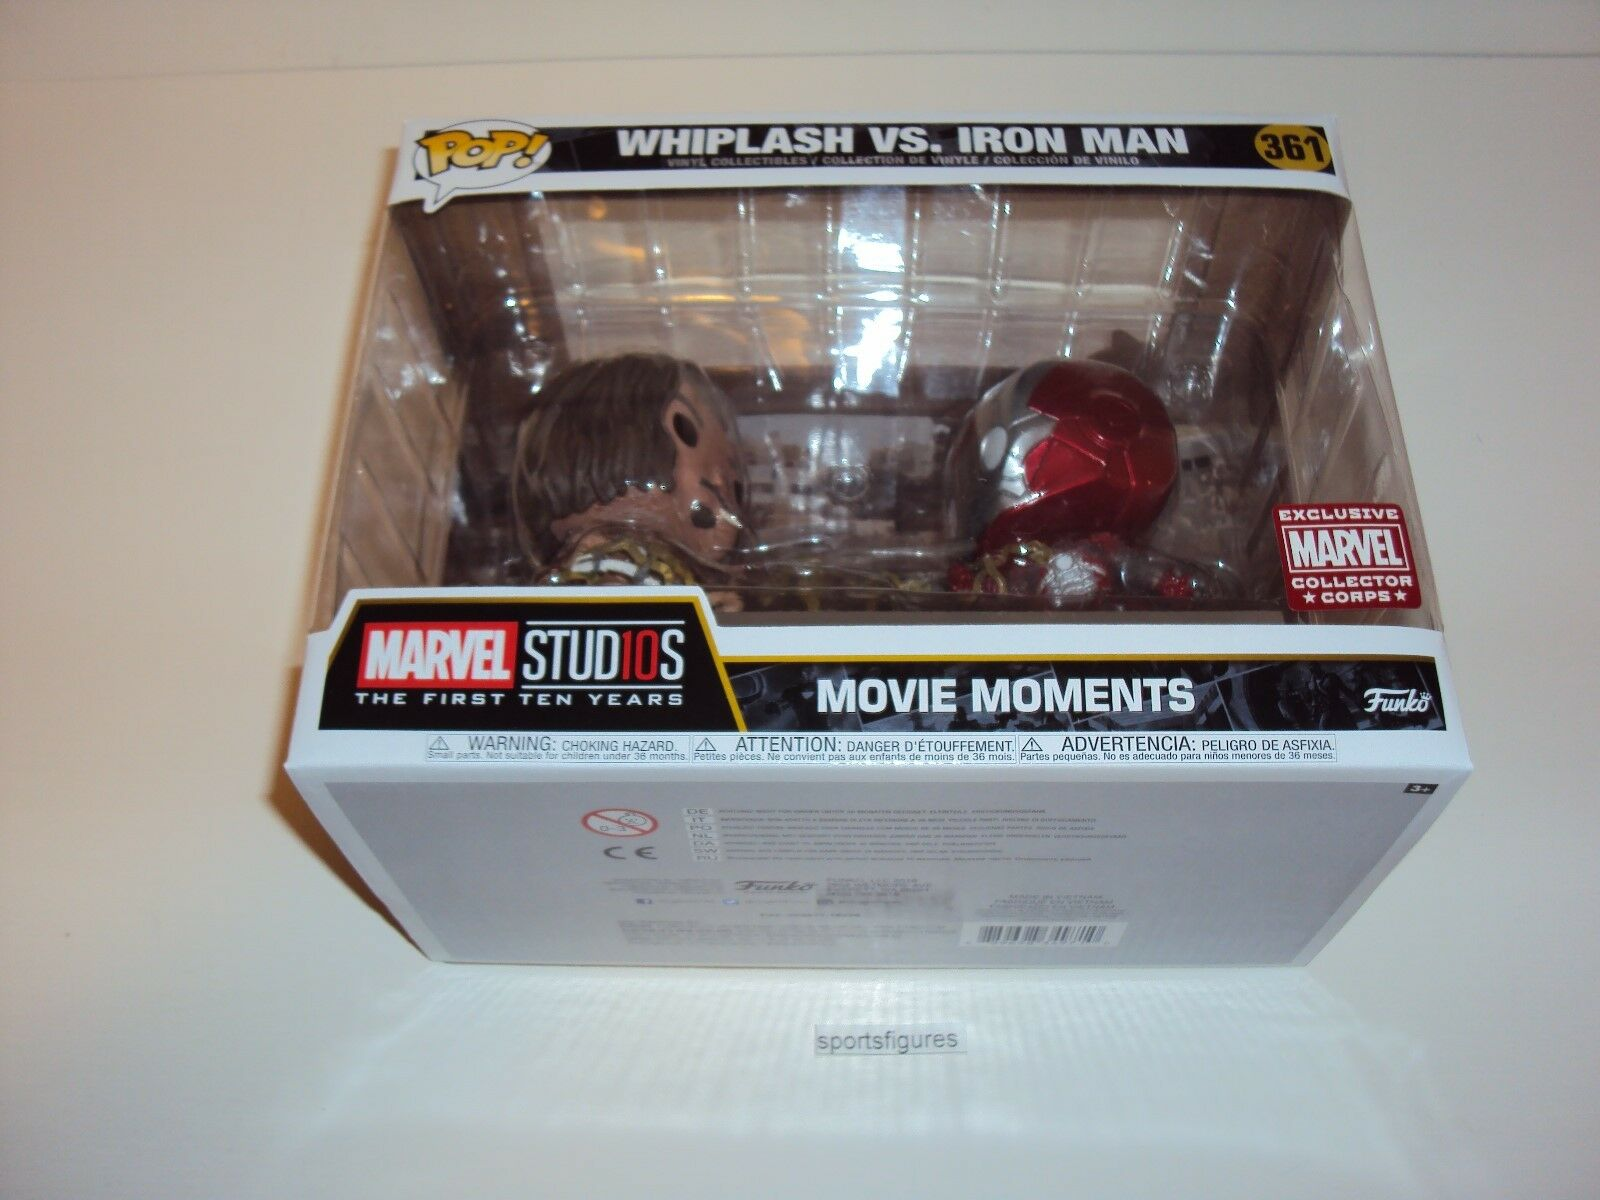 Whiplash VS. Iron Man   361 Marvel Movie Moments Collector Corps Exclusive